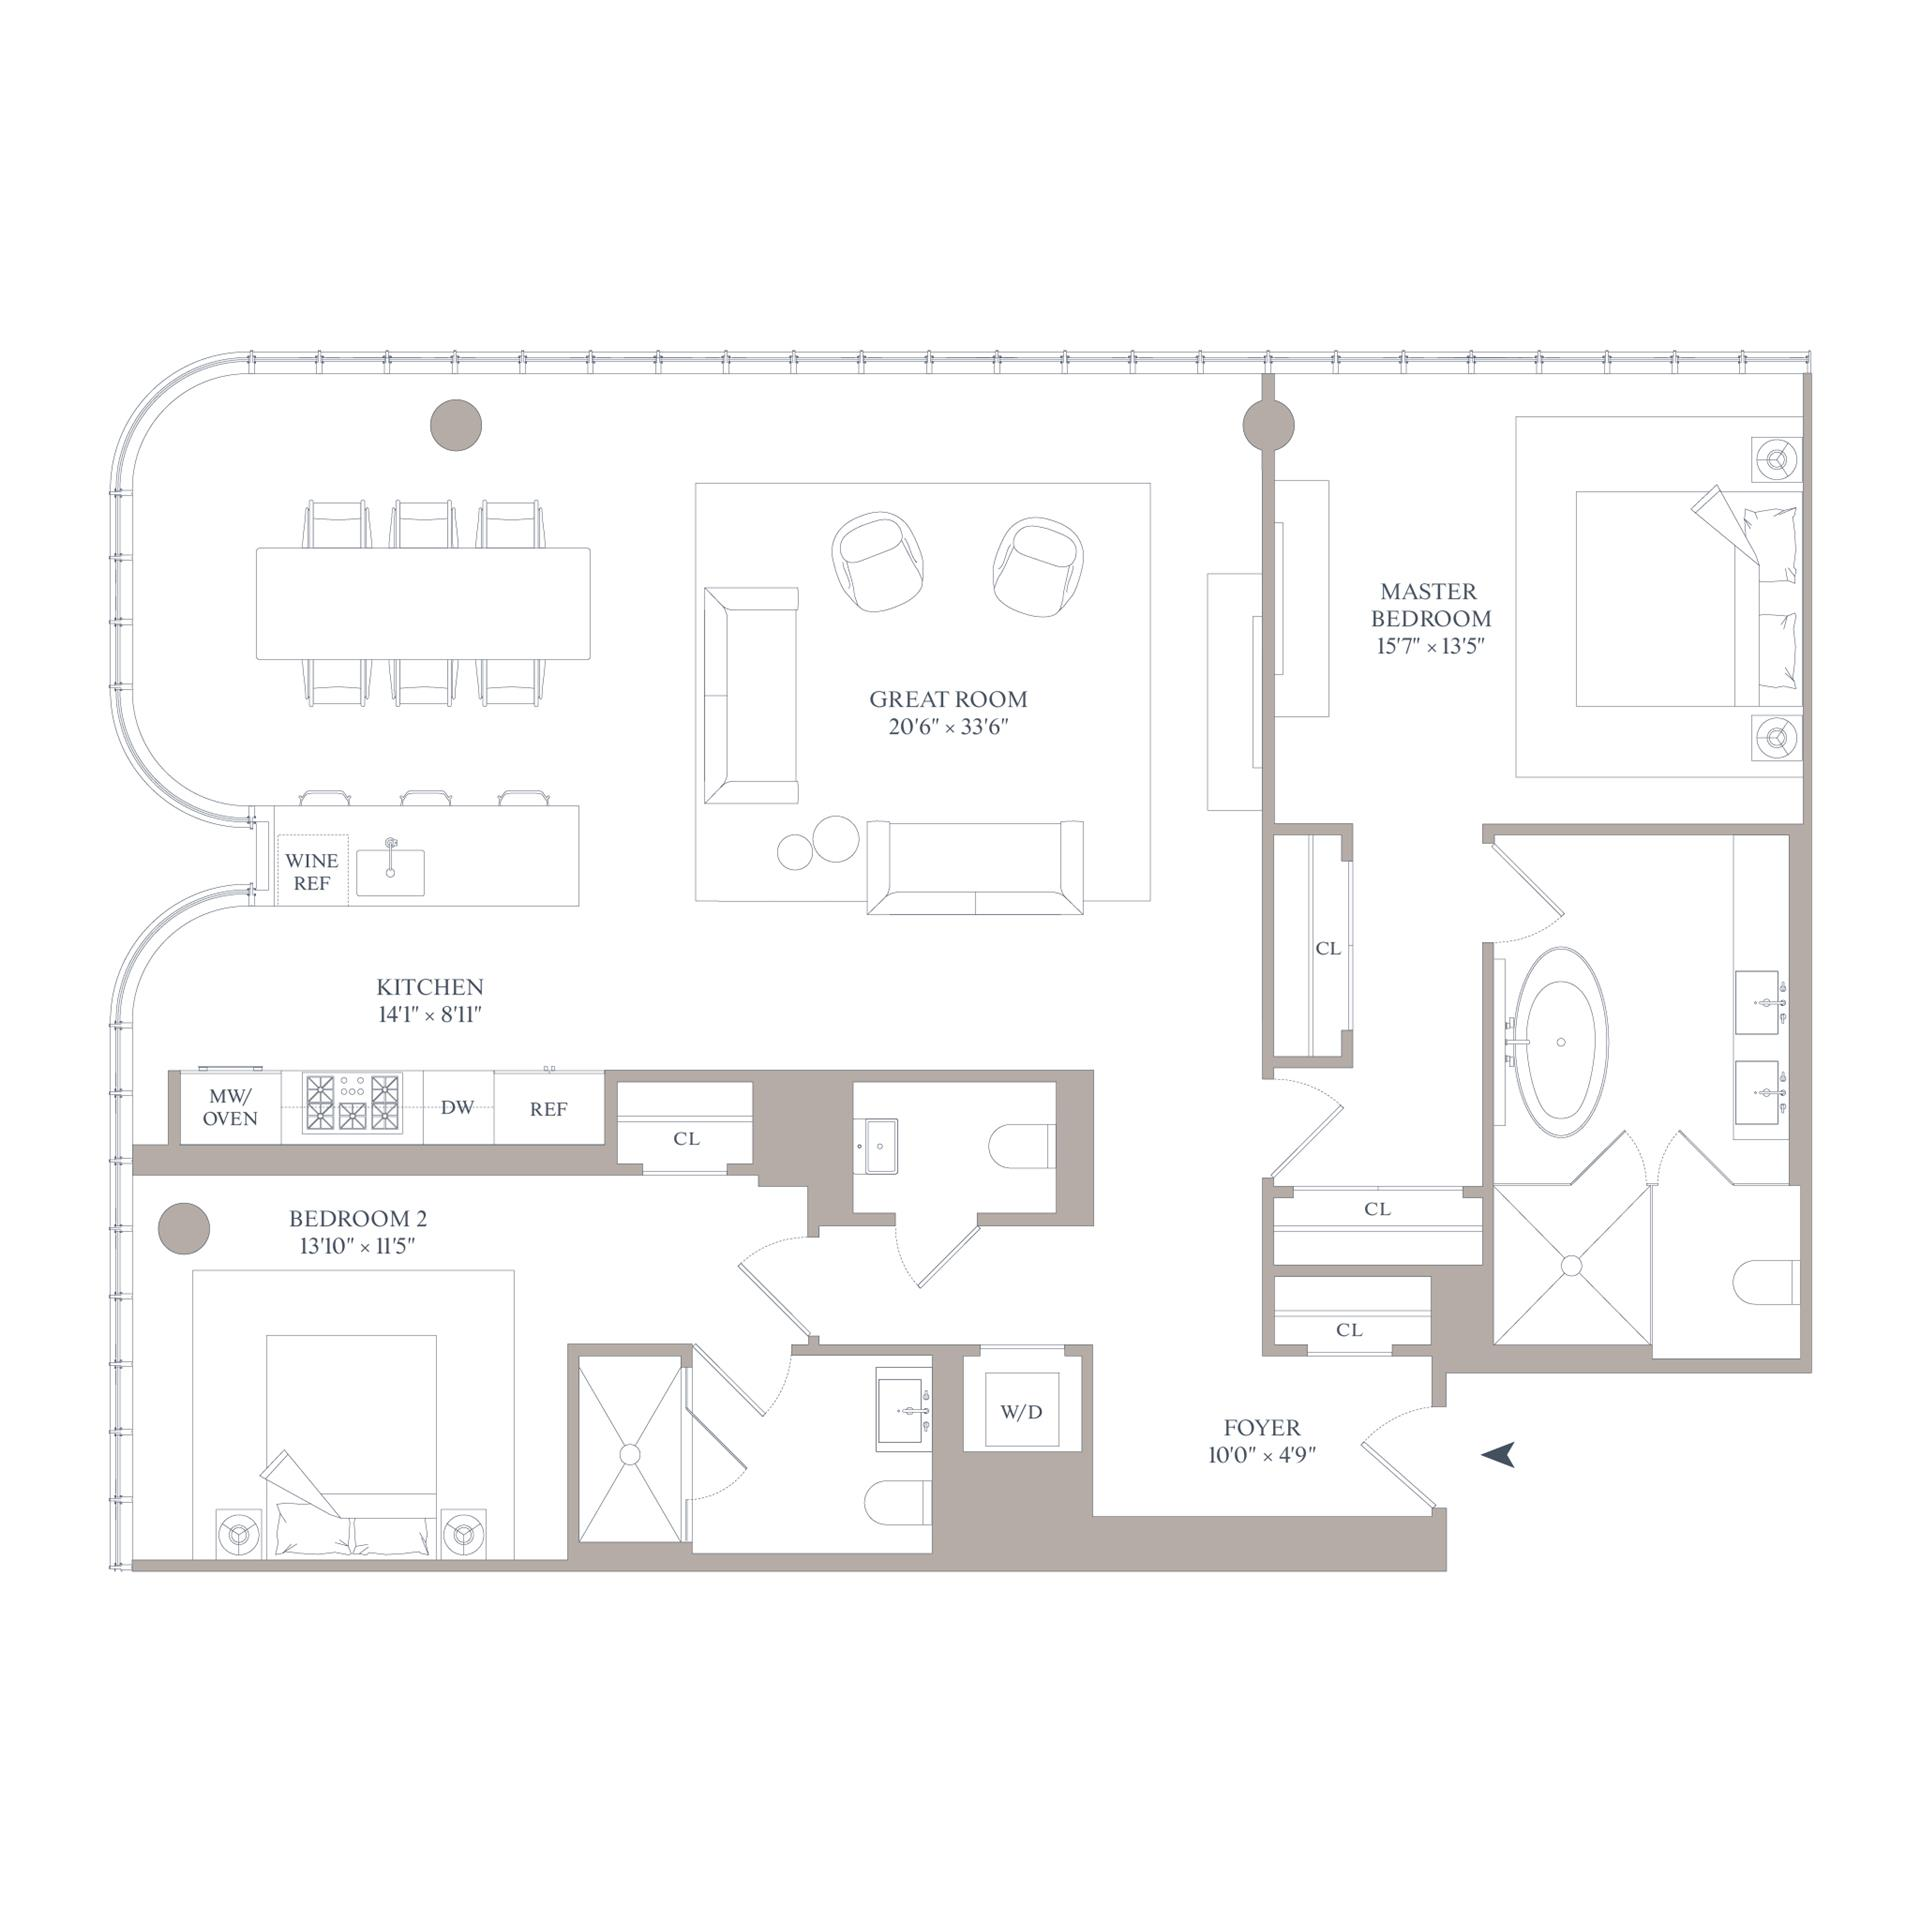 Floor plan of 565 Broome St, N8C - SoHo - Nolita, New York